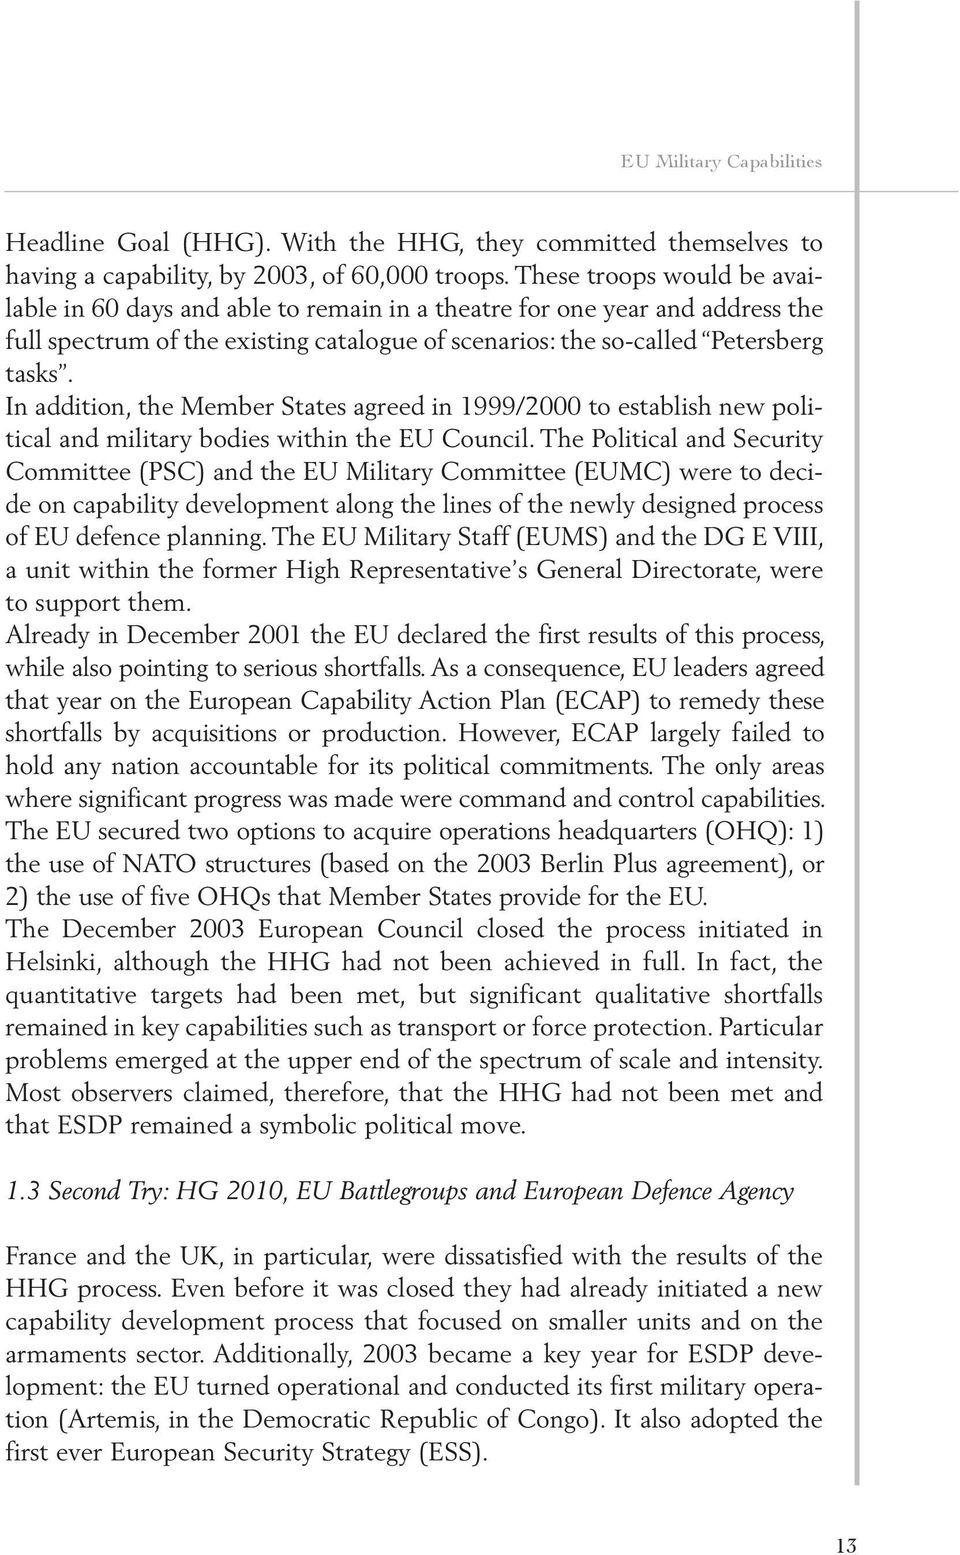 In addition, the Member States agreed in 1999/2000 to establish new political and military bodies within the EU Council.